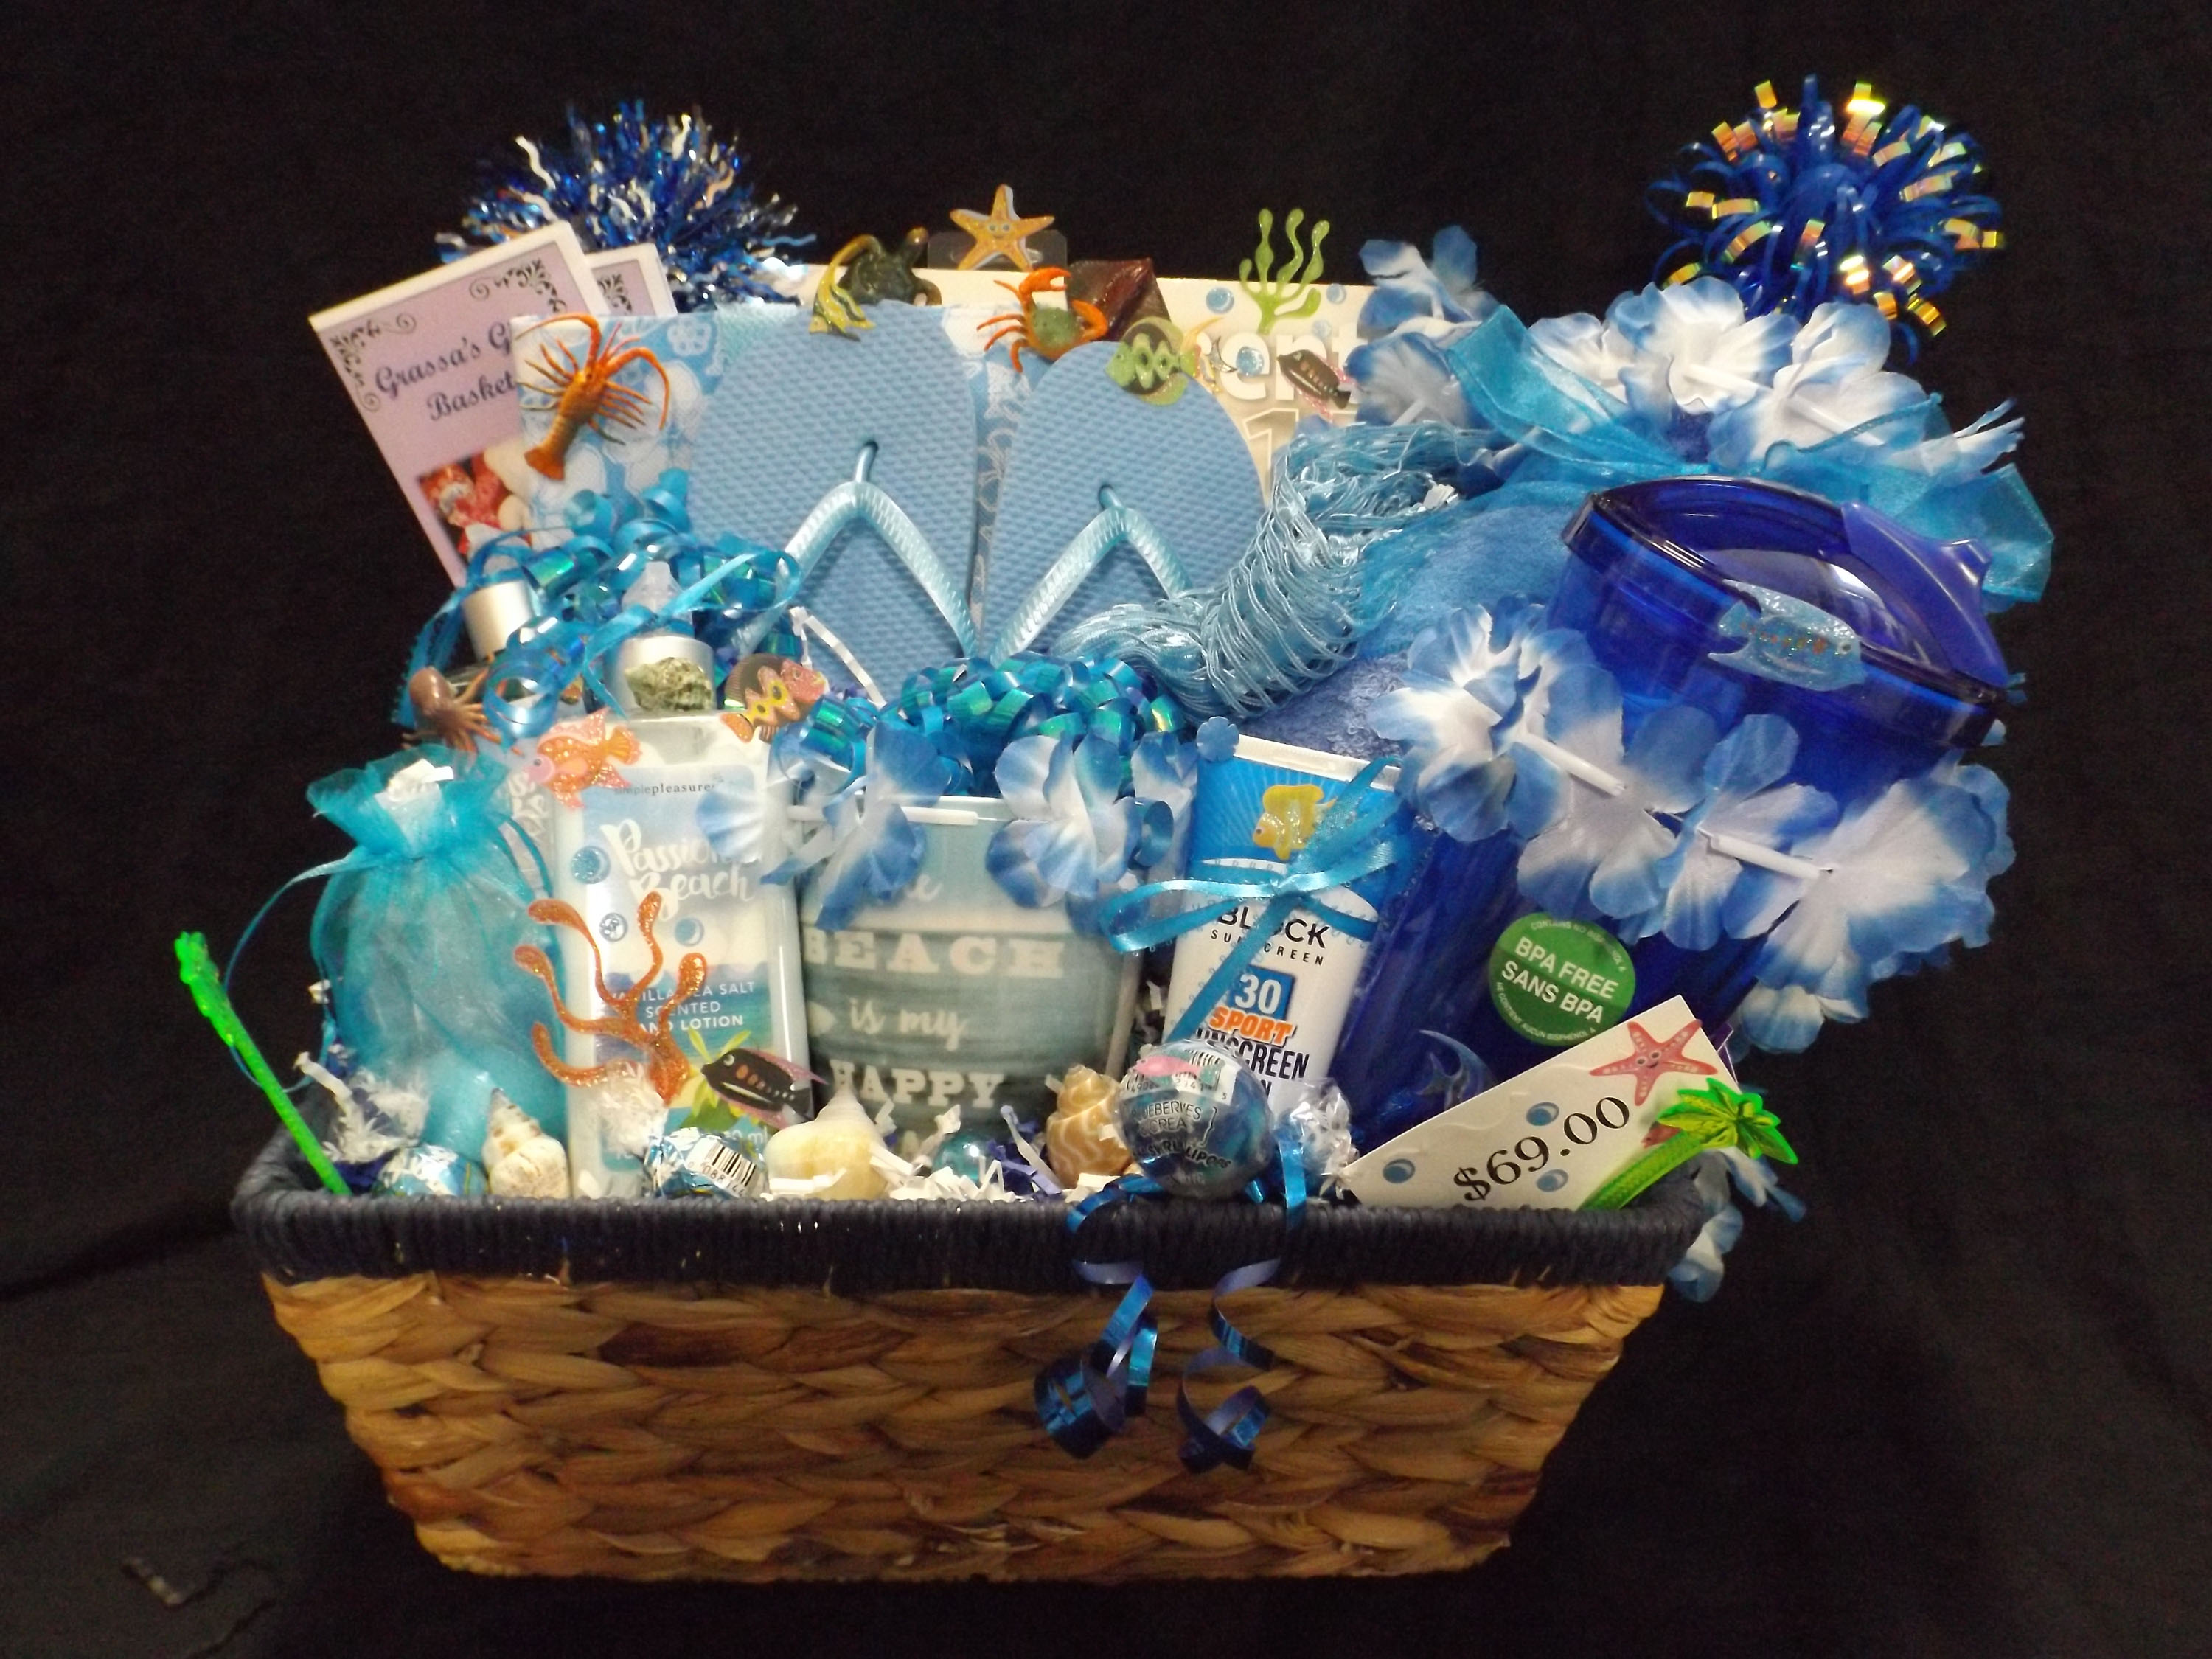 Grassas Gifts Gift Baskets In St Cloud Florida For Every Occasion